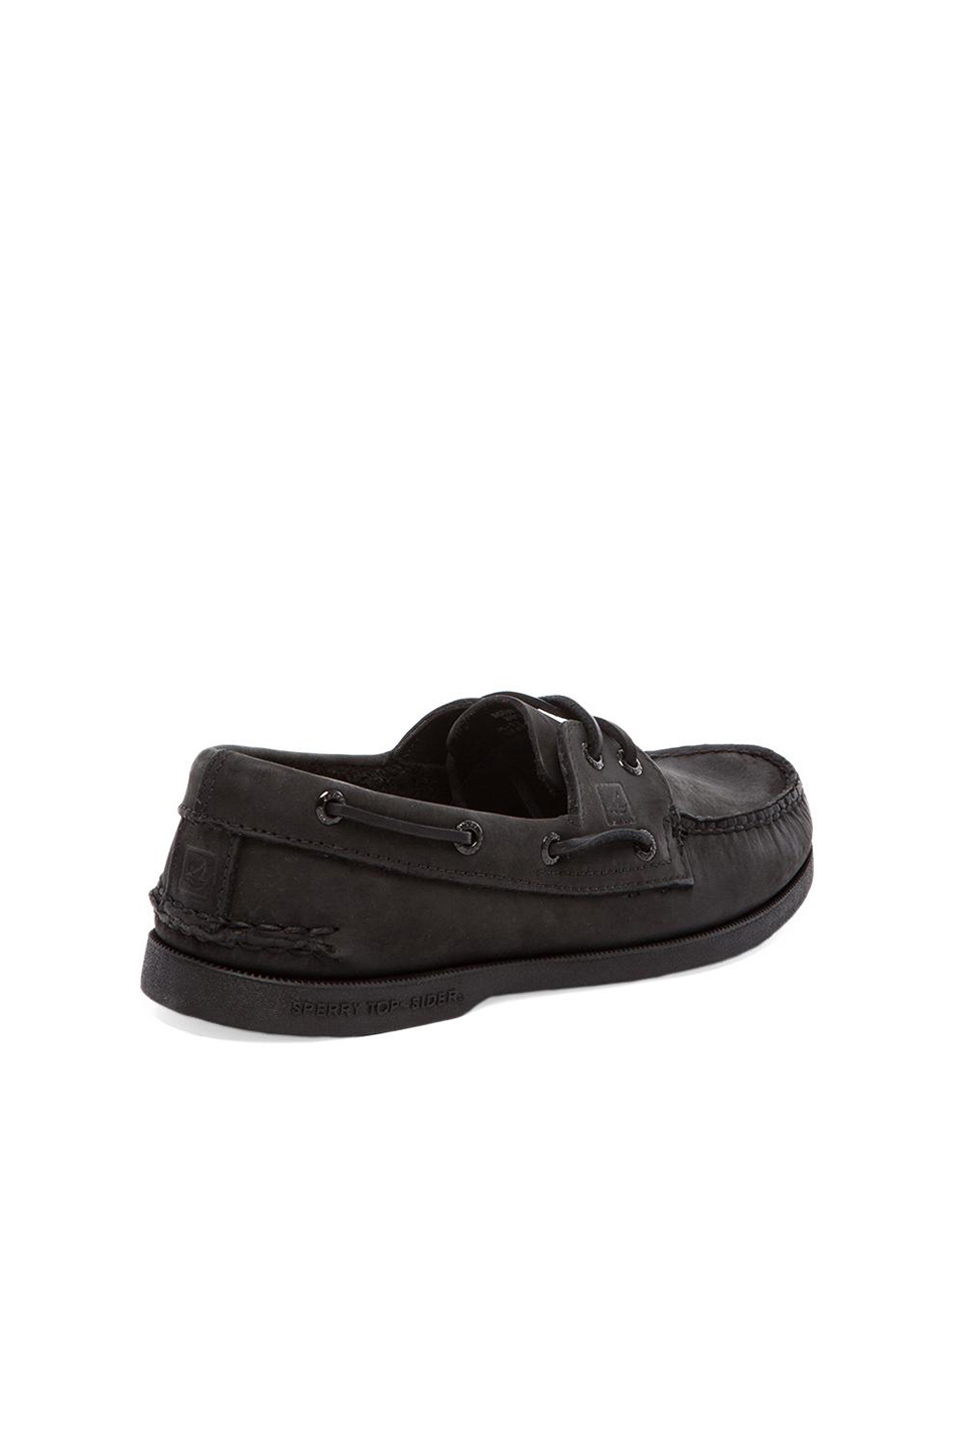 Sperry Top-Sider A/O in Black